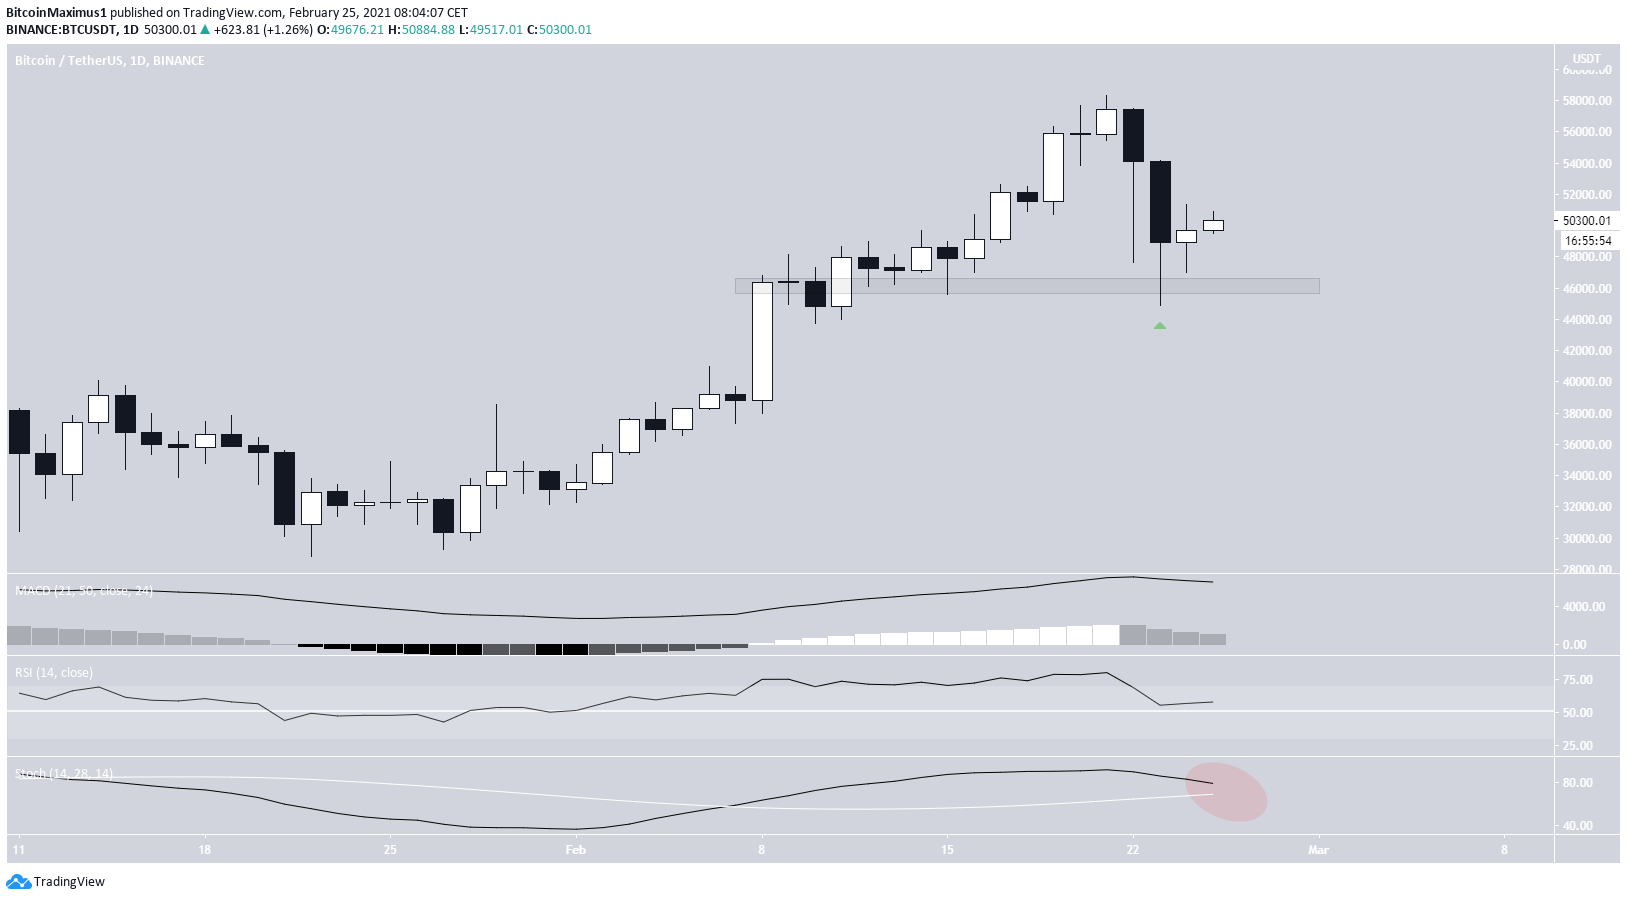 BTC Daily Movement